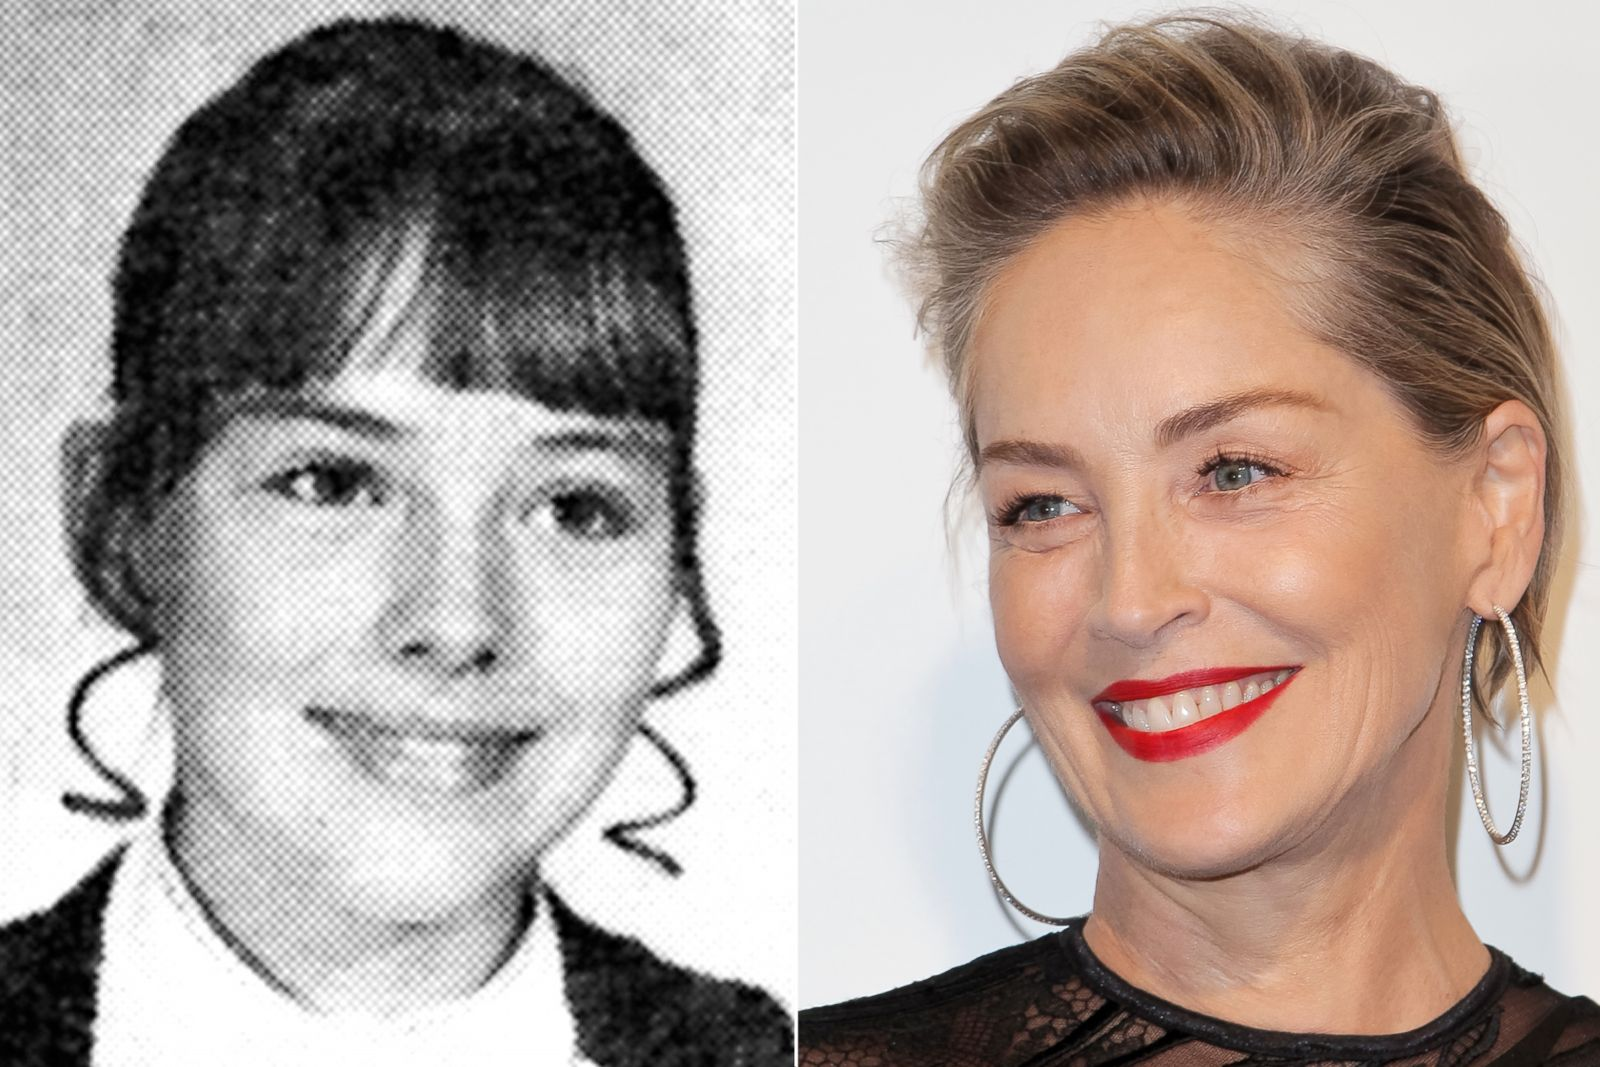 ' ' from the web at 'https://s.abcnews.com/images/Entertainment/HT-GTY-sharon-stone-ml-170309_3x2_1600.jpg'